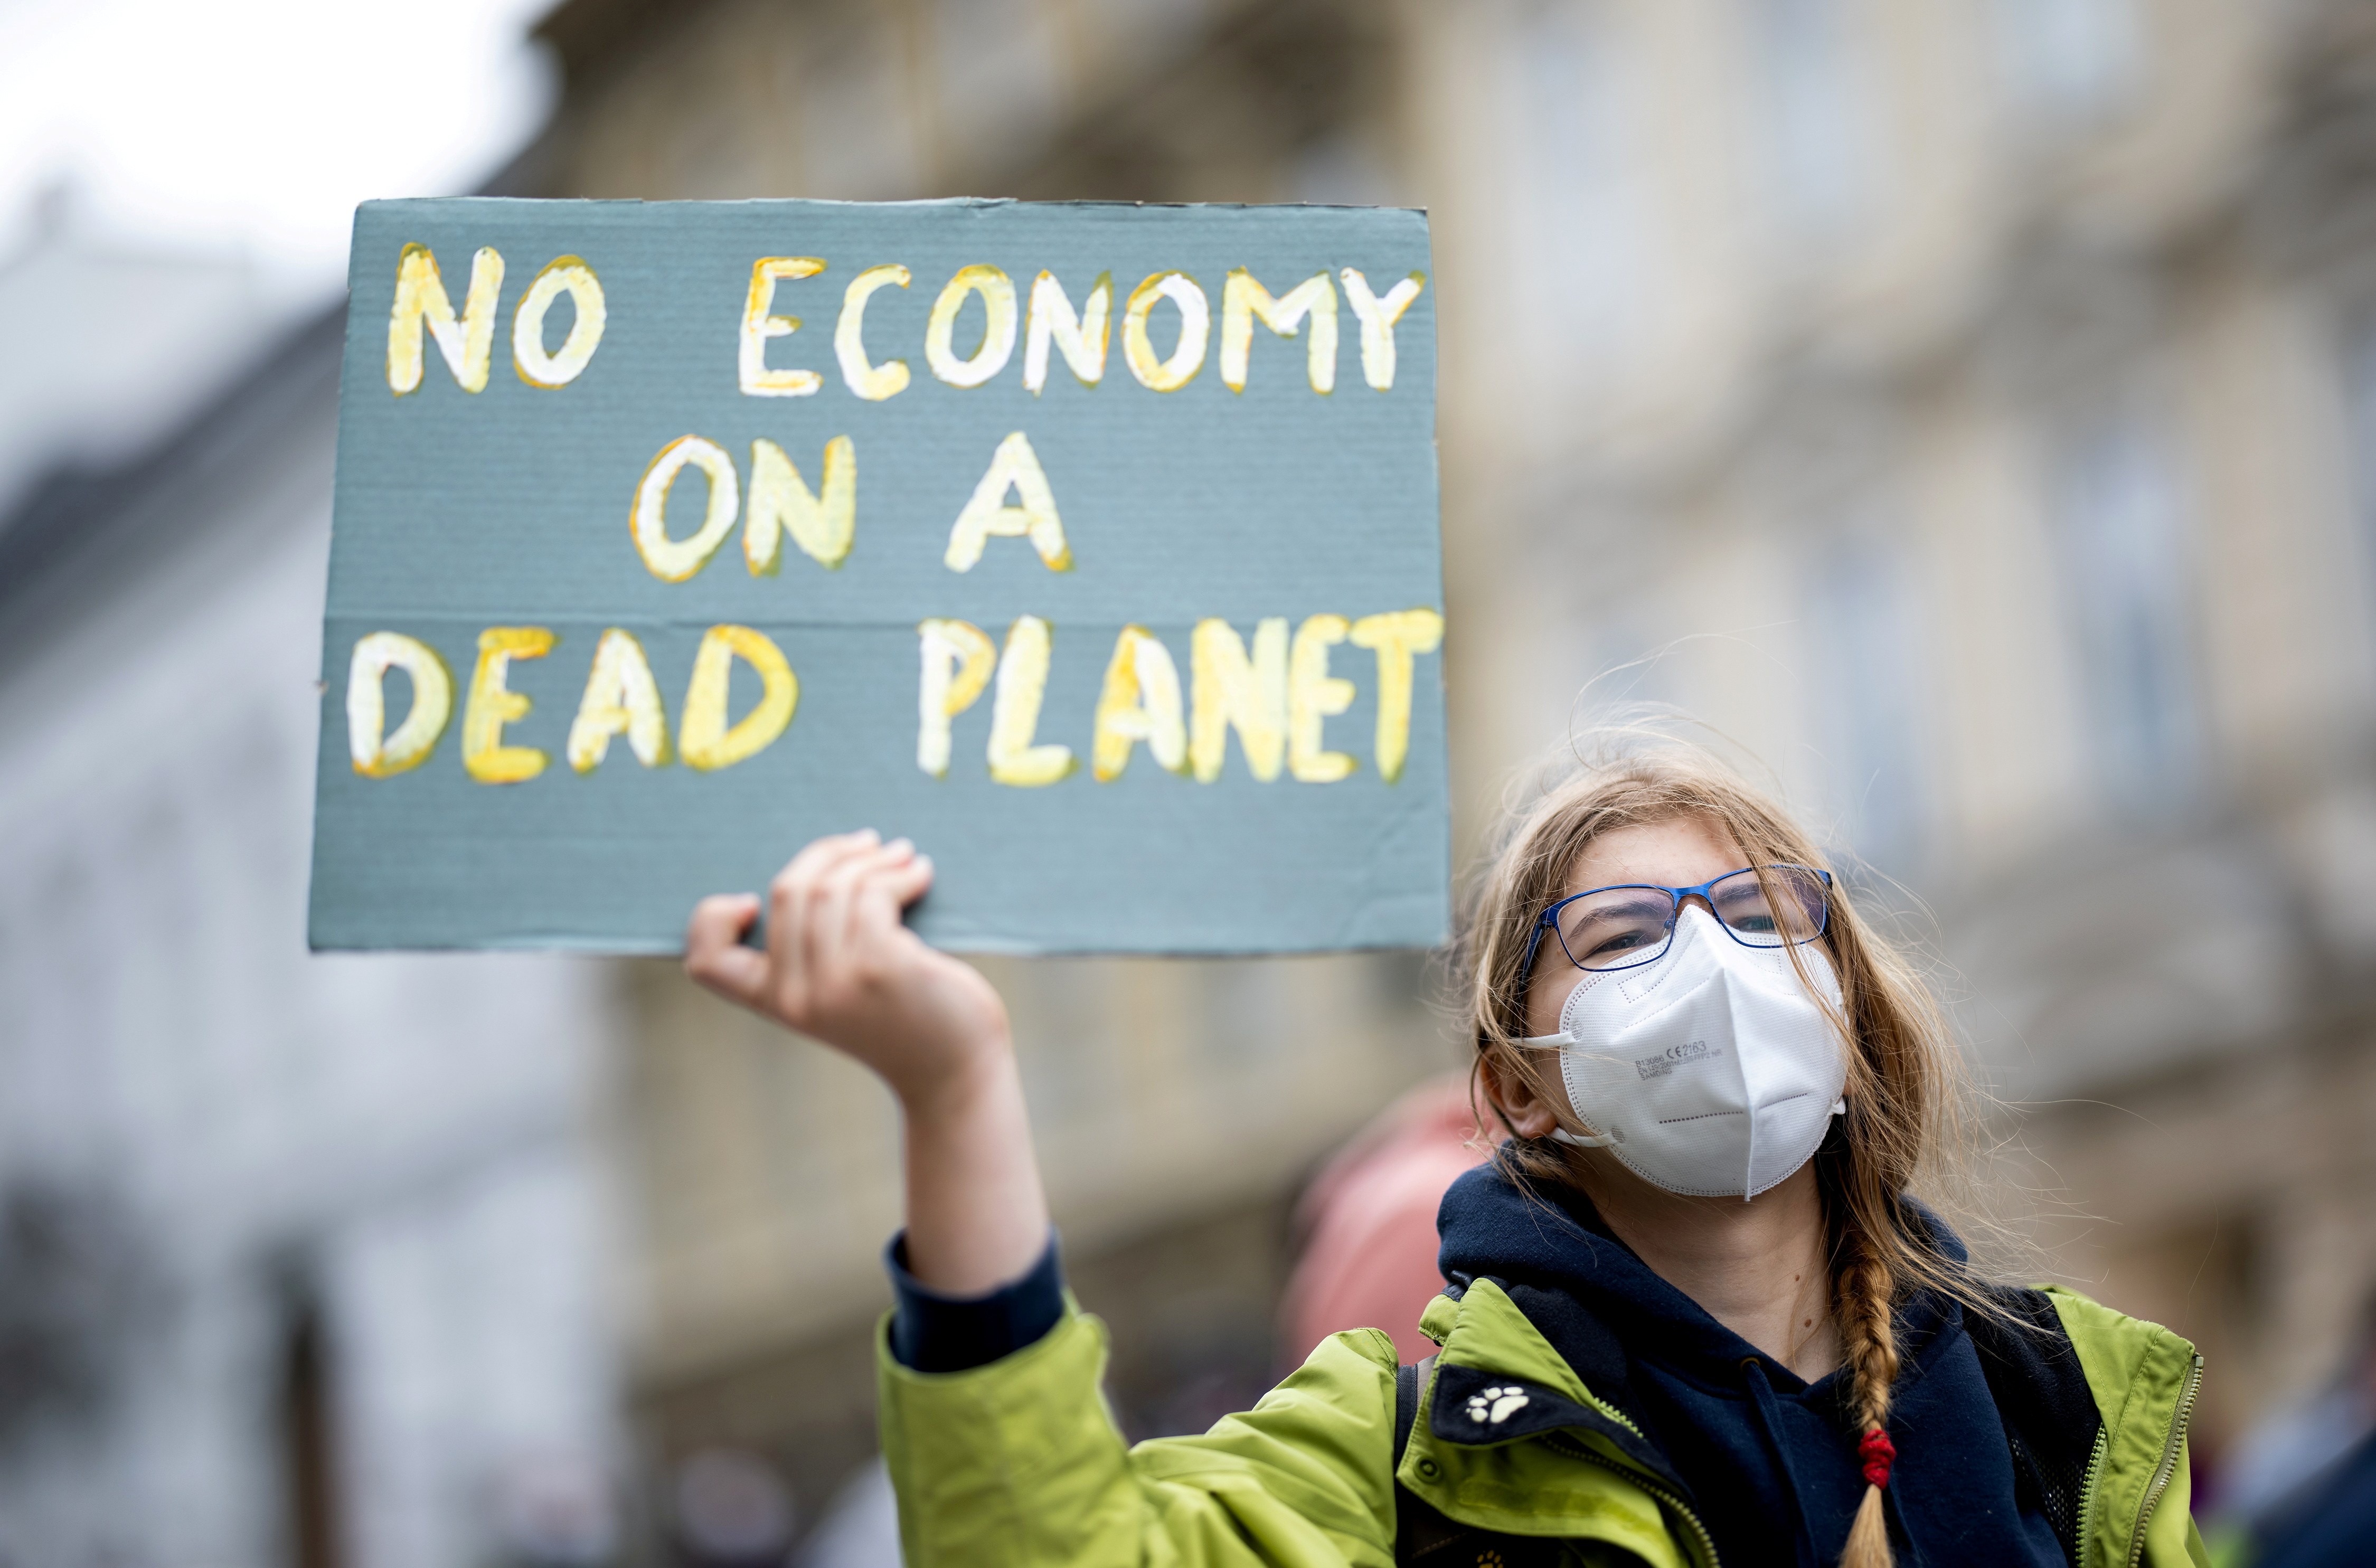 A person takes part in a Fridays for Future protest outside the Austrian Economic Chamber, in Vienna, Austria, May 14, 2021. REUTERS/Lisi Niesner/File Photo